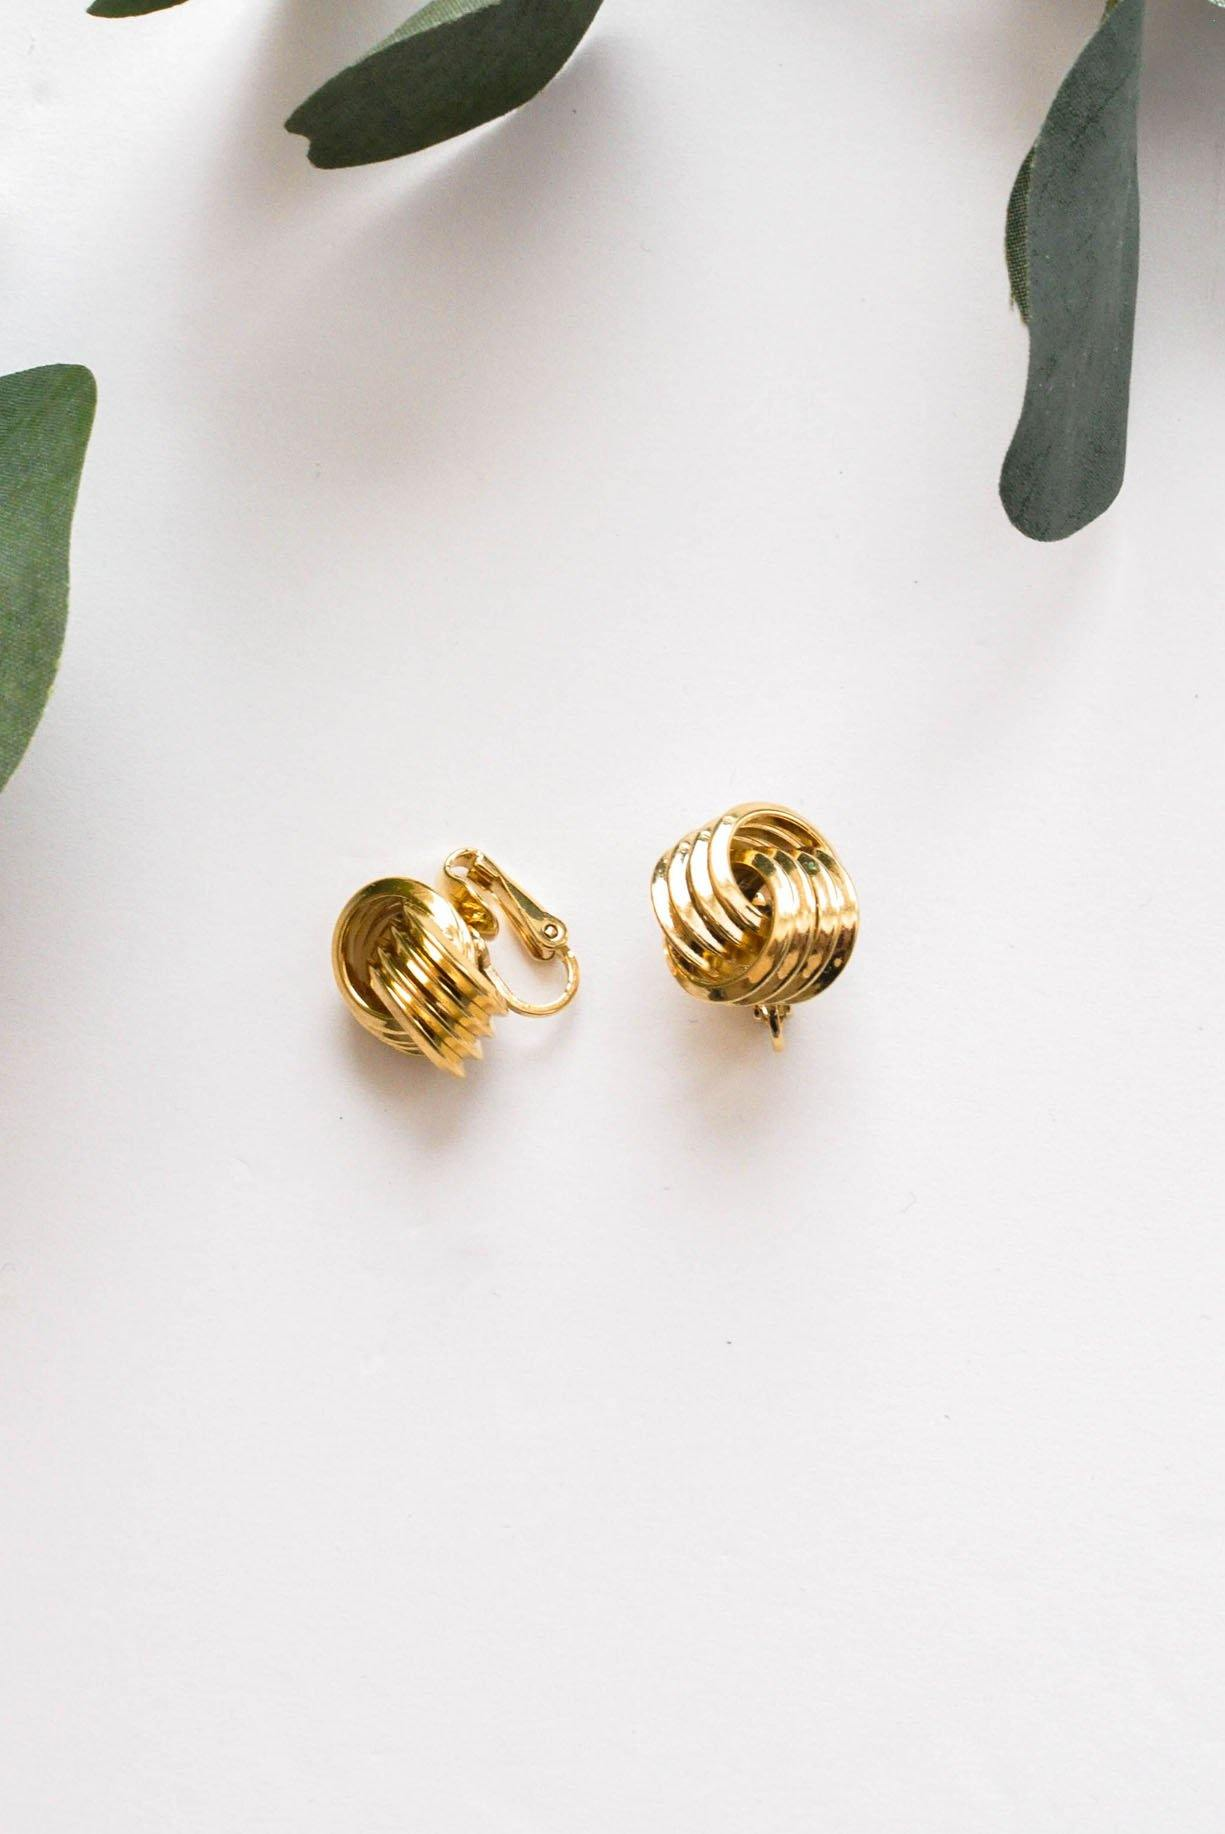 Love Knot Clip-on Earrings - Sweet & Spark